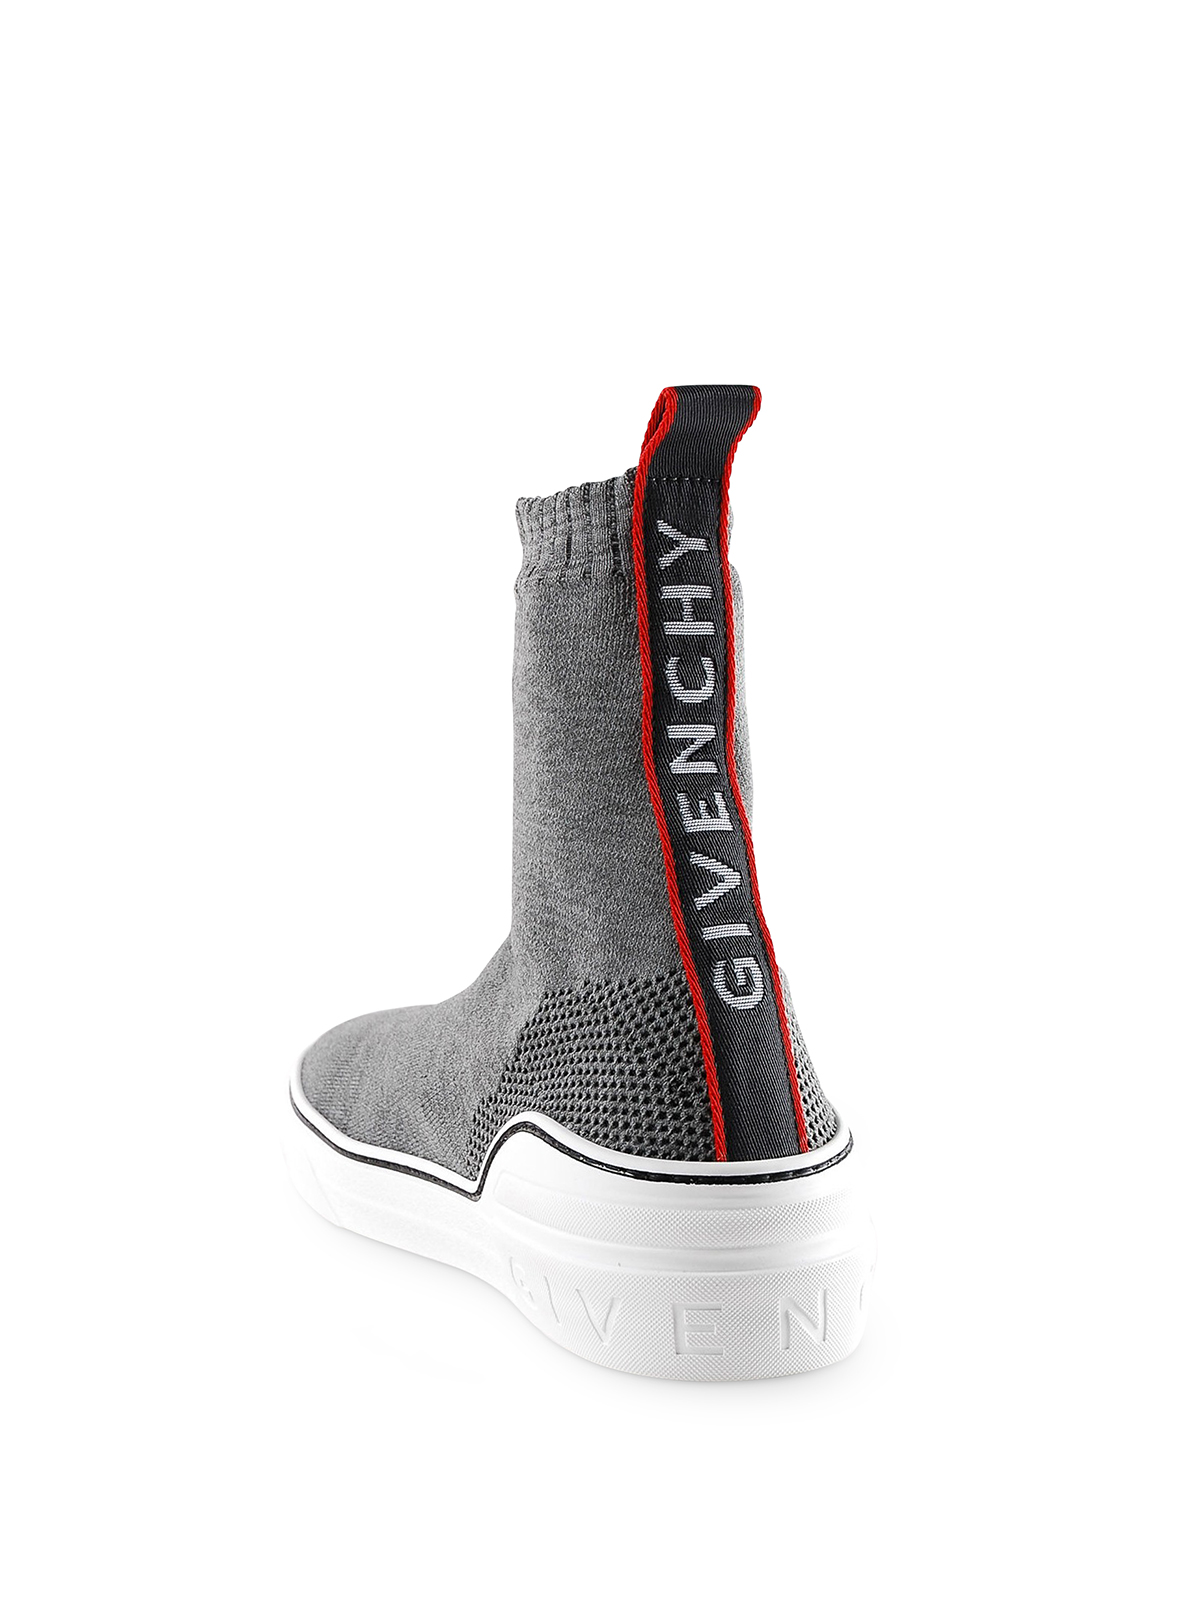 Givenchy - George V mid sock sneakers